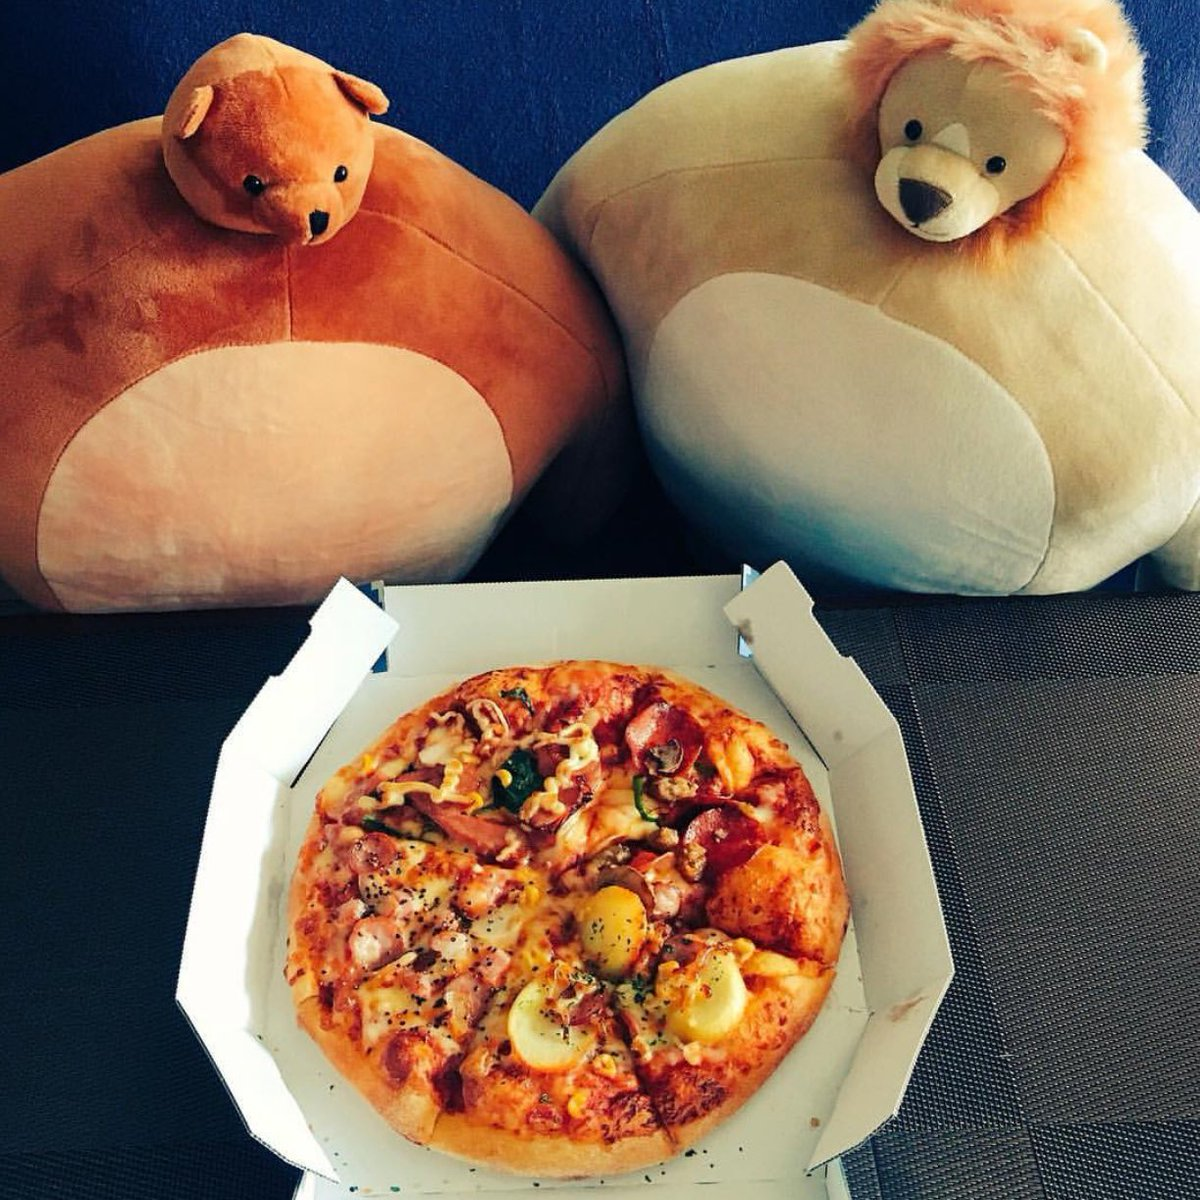 Pip and Nickleby can't wait to dive into this pizza. Thank heavens there are an even number of slices. Wrestling for the last piece isn't fun for anyone. Special thanks to @kuri3nen for this delicious #foodiefriday photo. #pizza #friday #PipTheBear #NicklebyTheLion @THK_FanClub